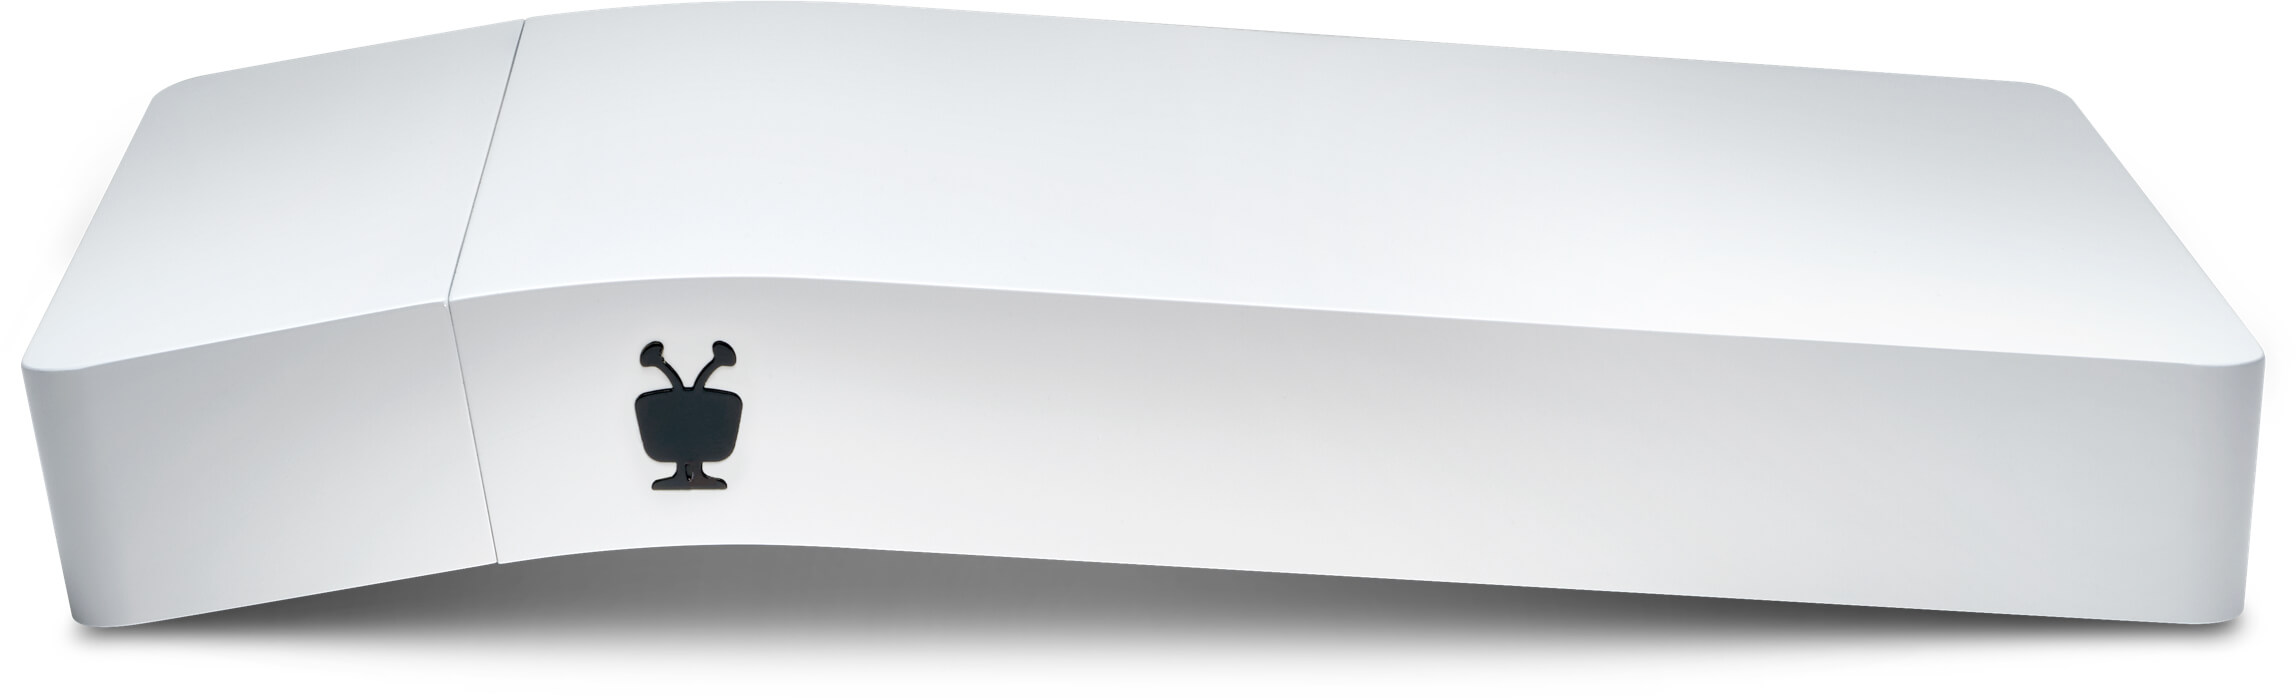 large white tivo bolt vox with tivo logo showing